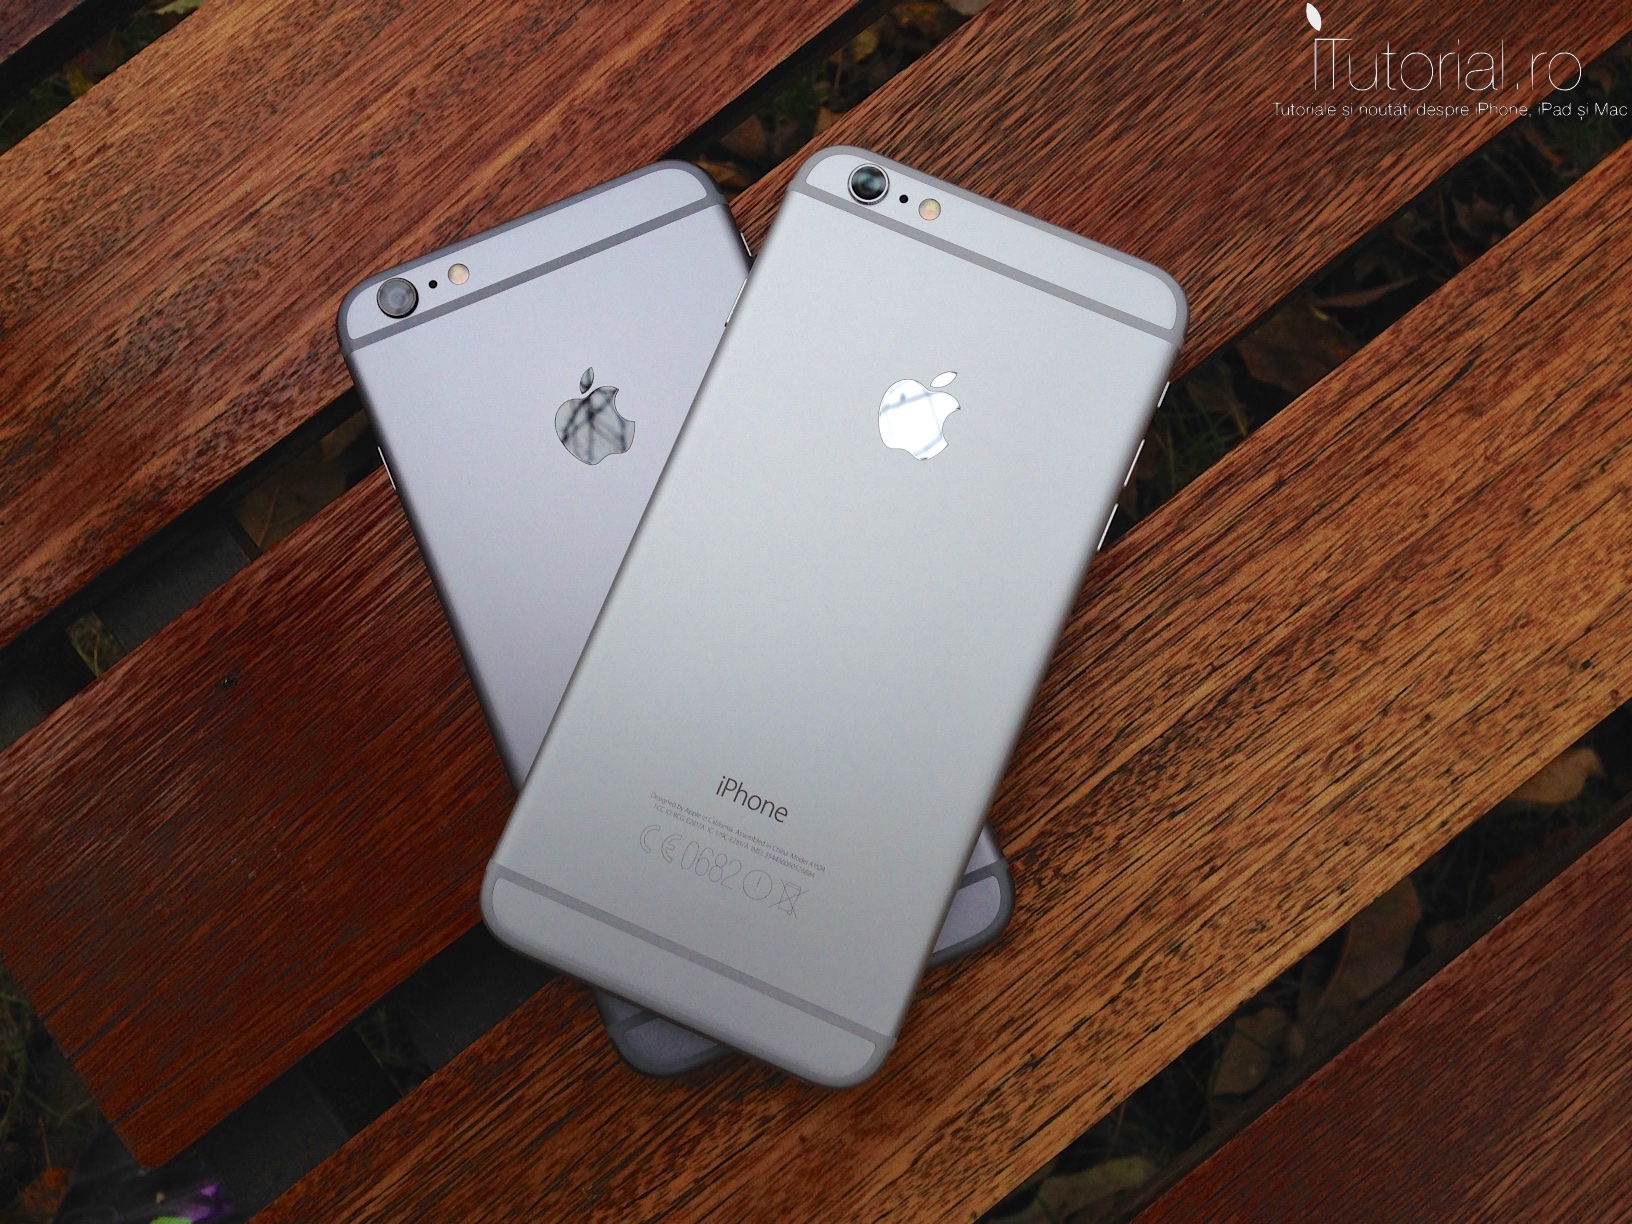 iphone 6 plus review #itutorial.ro (26)